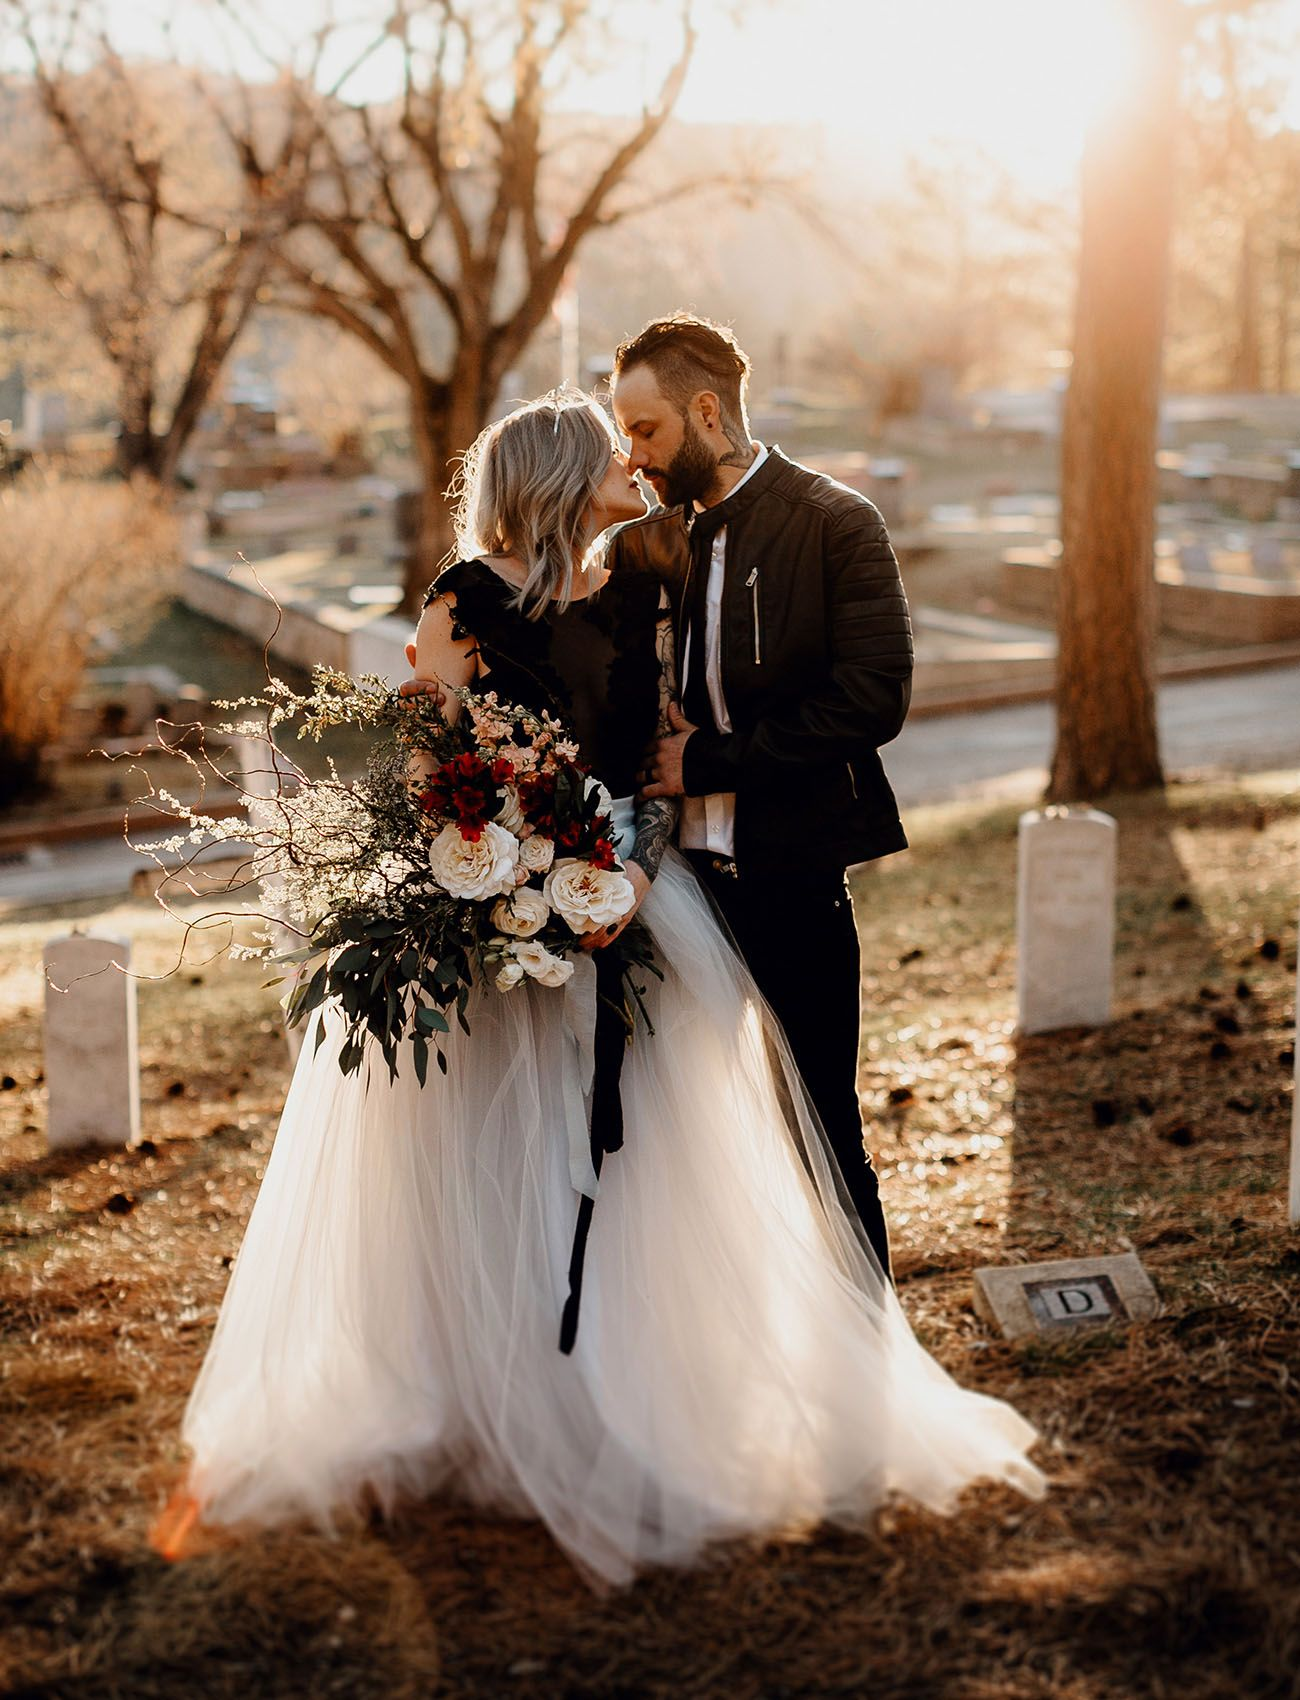 Historic Cemetery Vintage Details This Wedding Inspiration Is Downright Chilling Green Wedding Shoes Amazing Wedding Dress Wedding Inspiration Country Wedding Dresses [ 1700 x 1300 Pixel ]